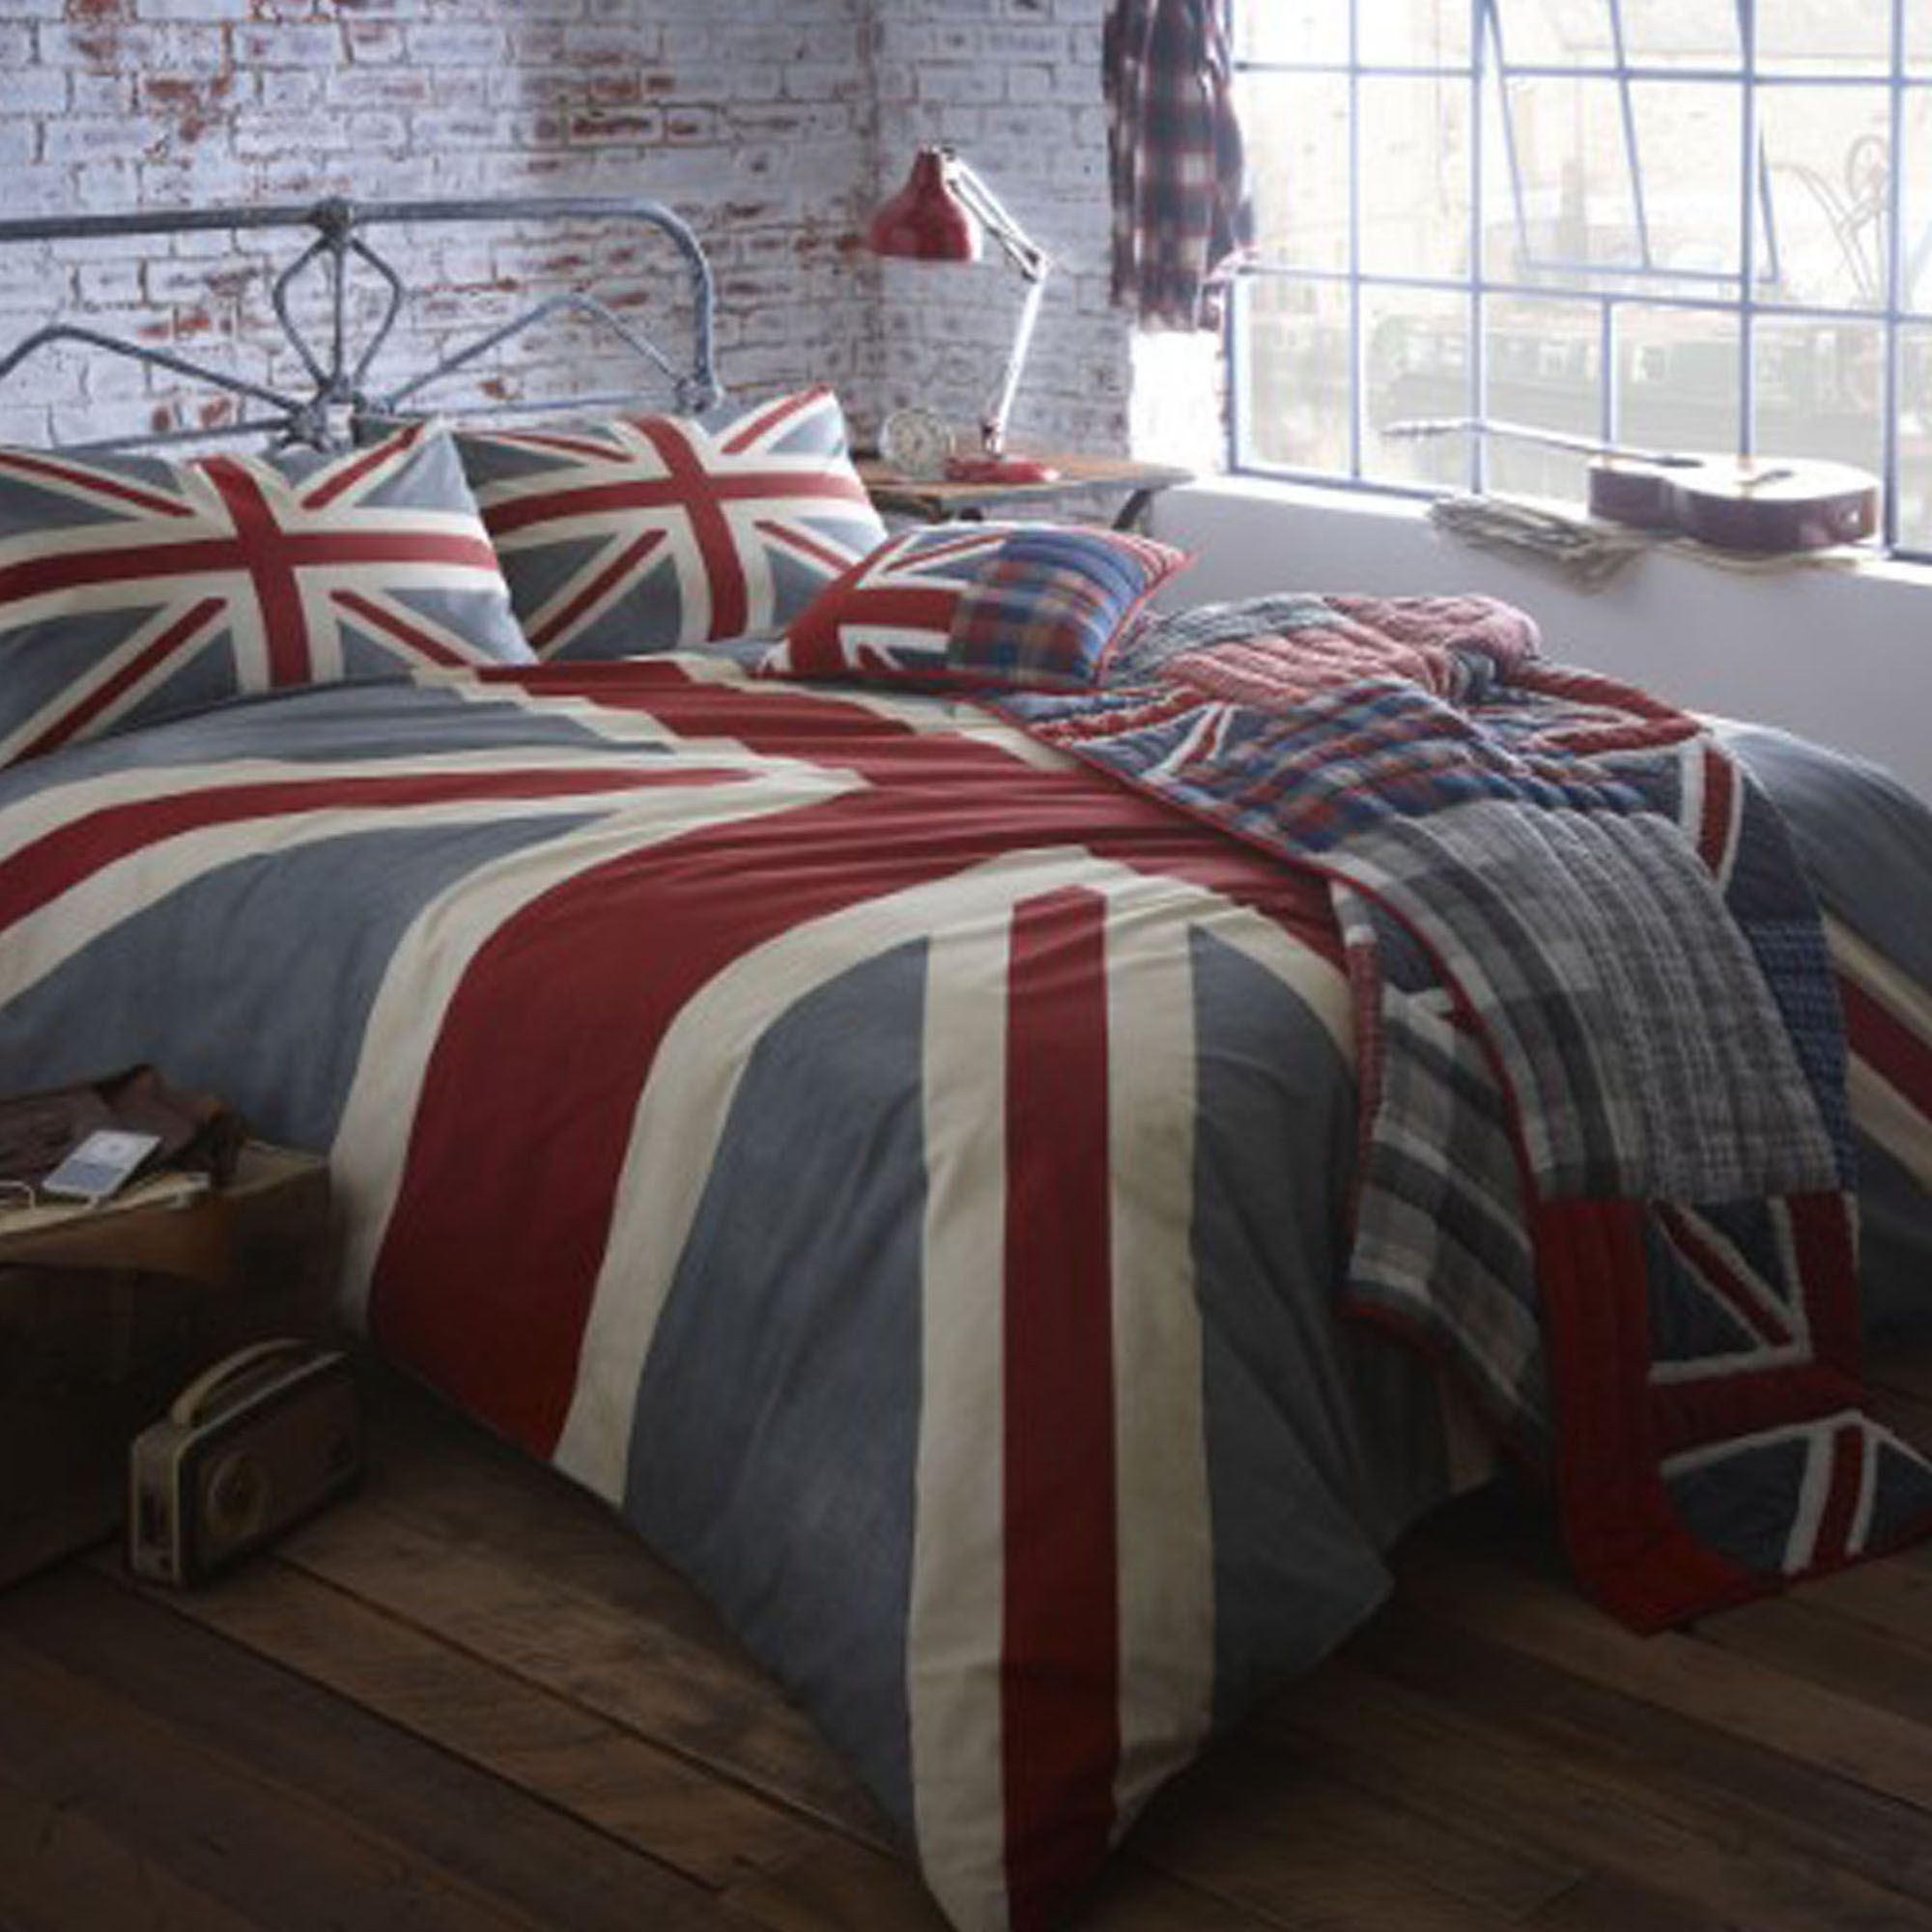 Home Collection Grey 'Vintage Union Jack' Bedding Set From